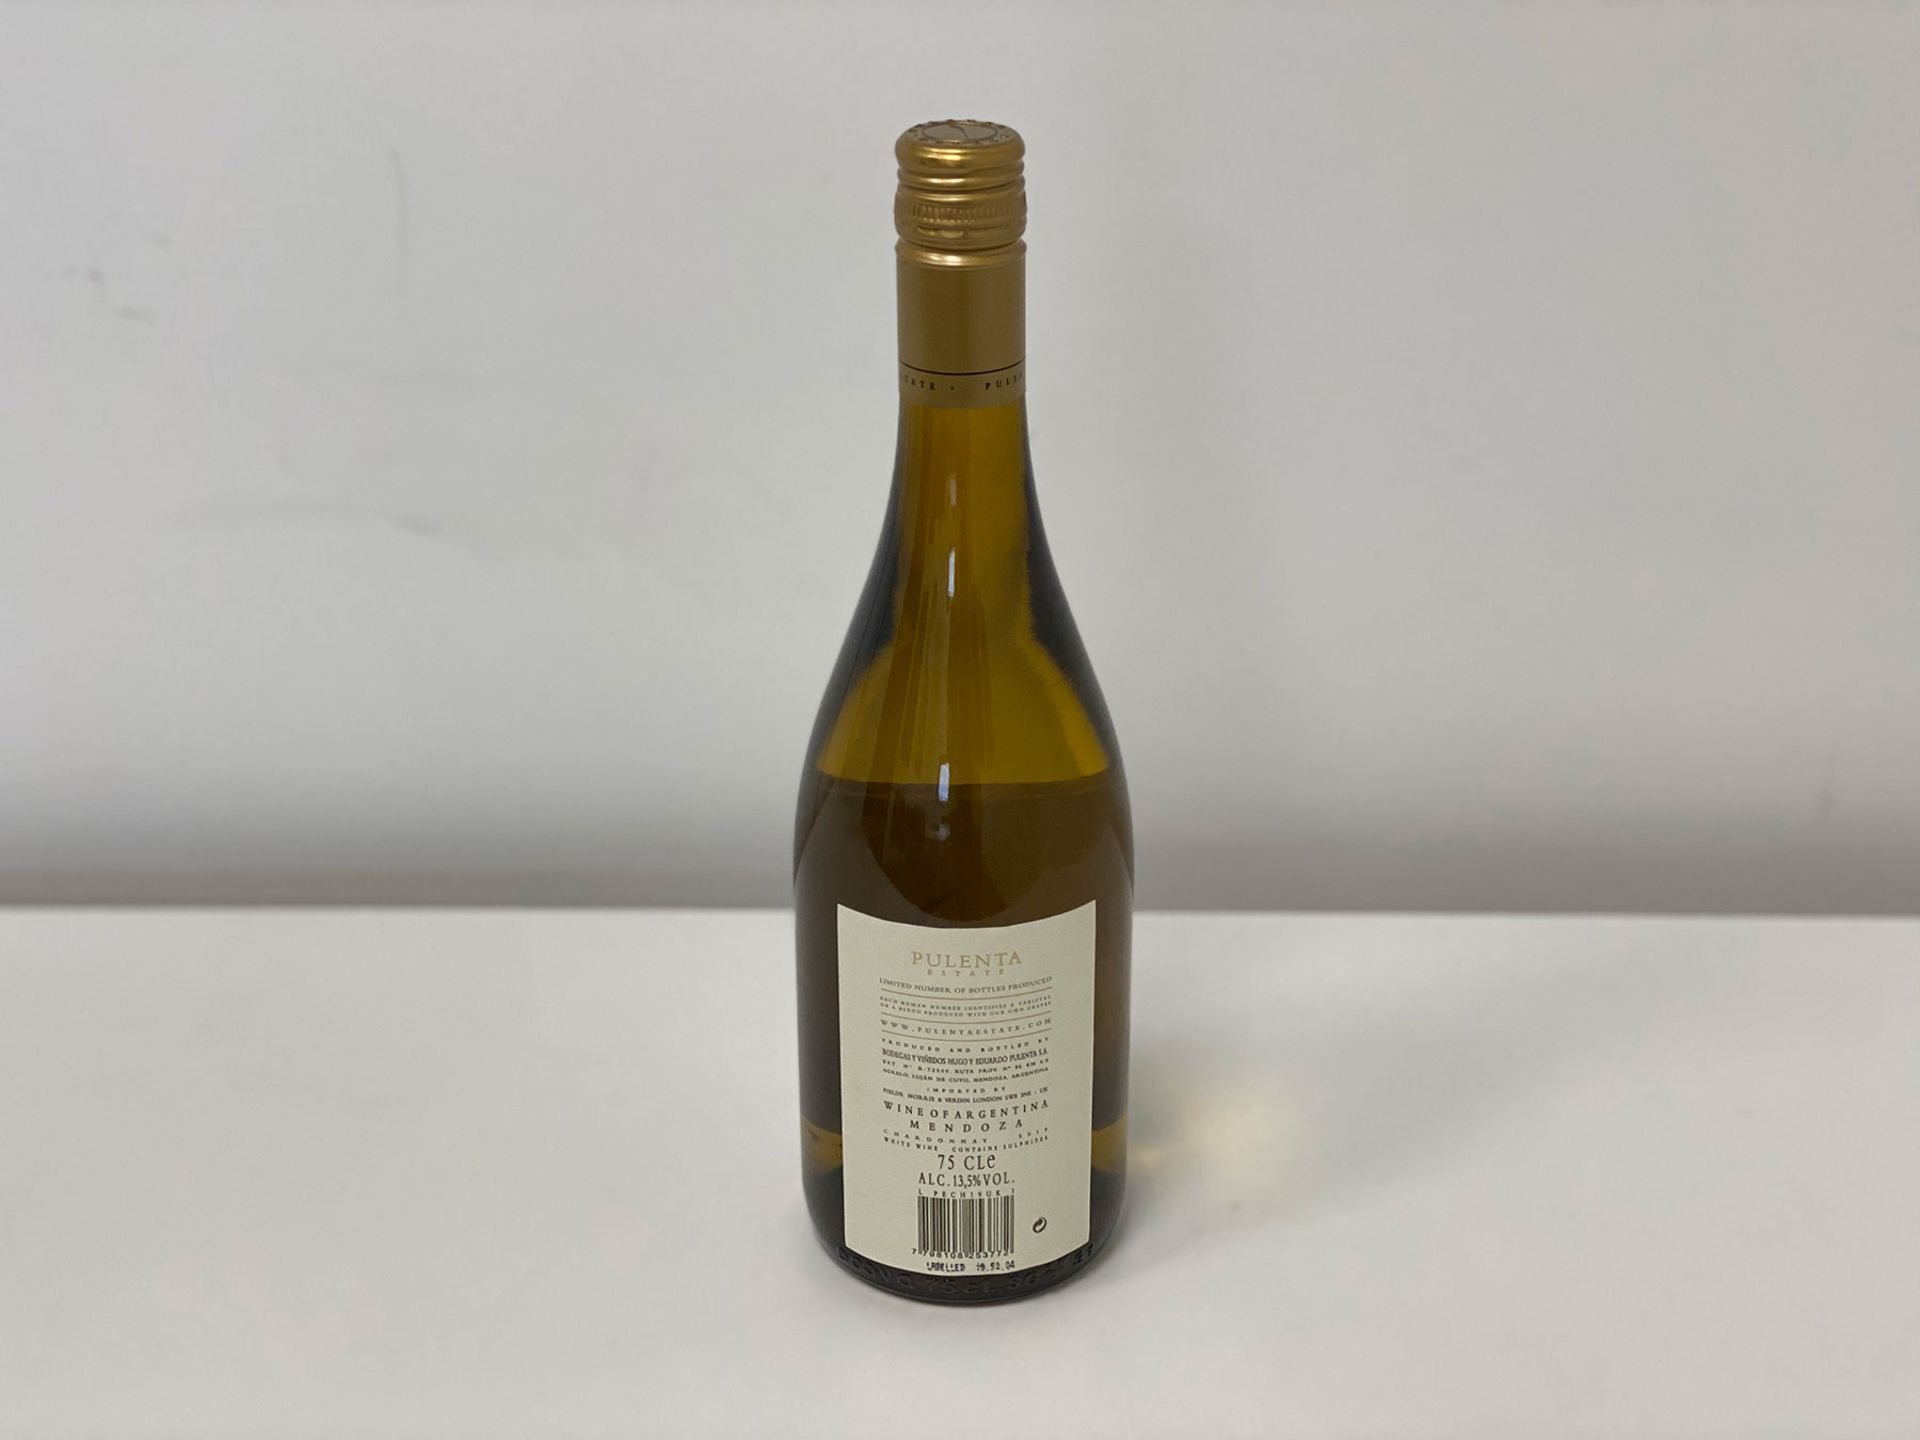 30 Bottles (5 Cases) 2019 Pulenta Estate - Pulenta Estate - Chardonnay - Mendoza - Image 2 of 2